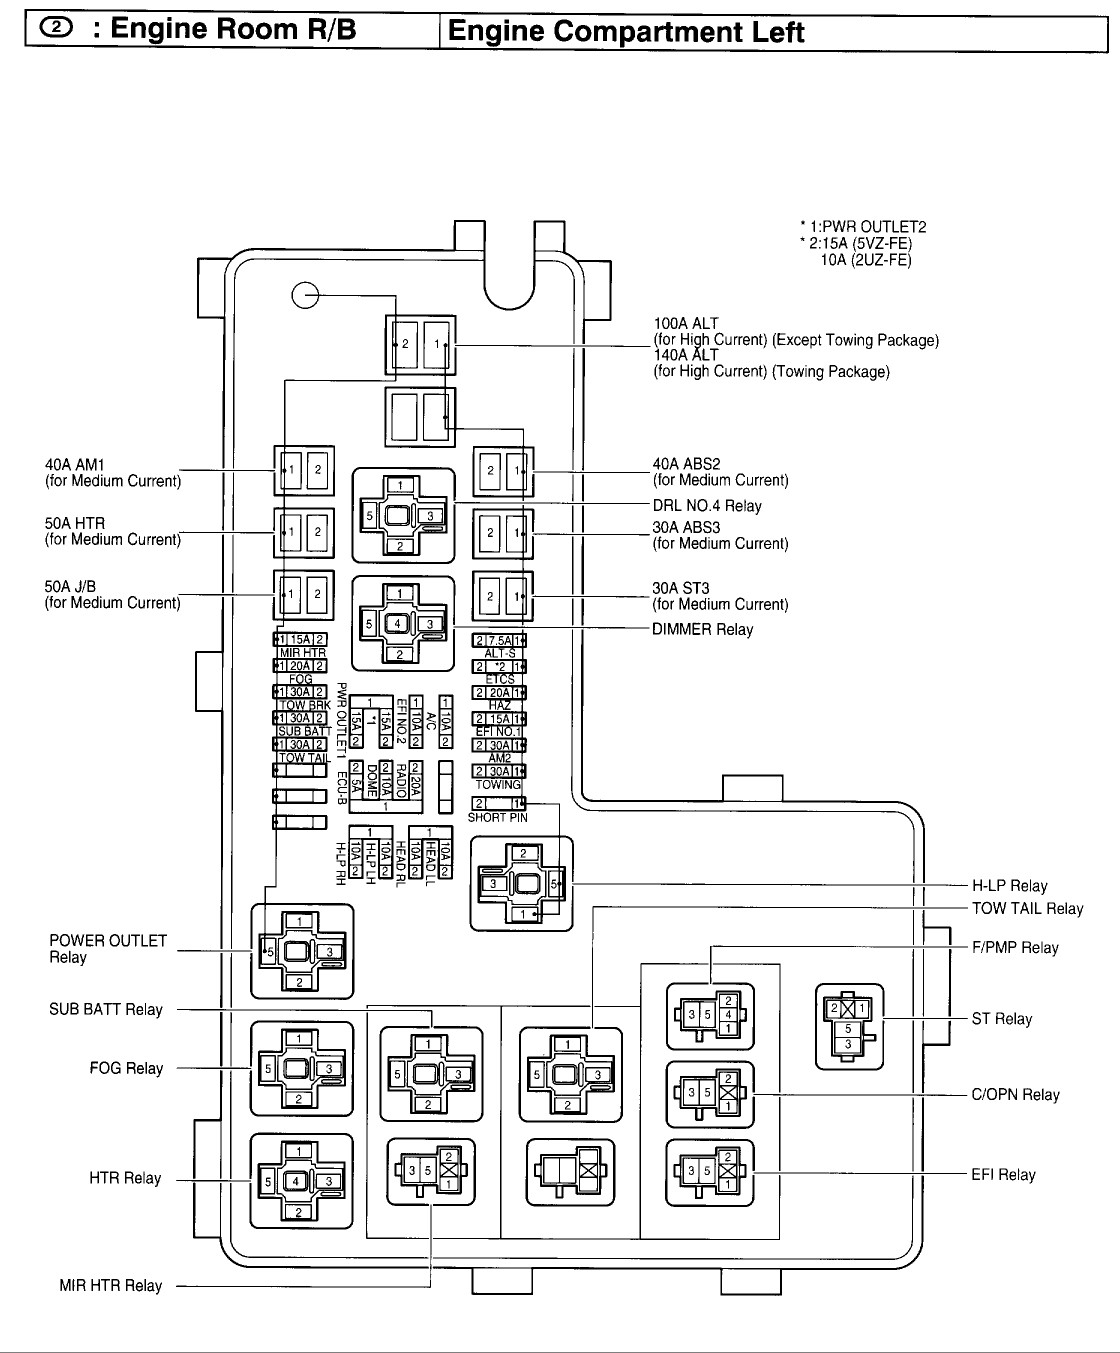 2010 tundra fuse diagram